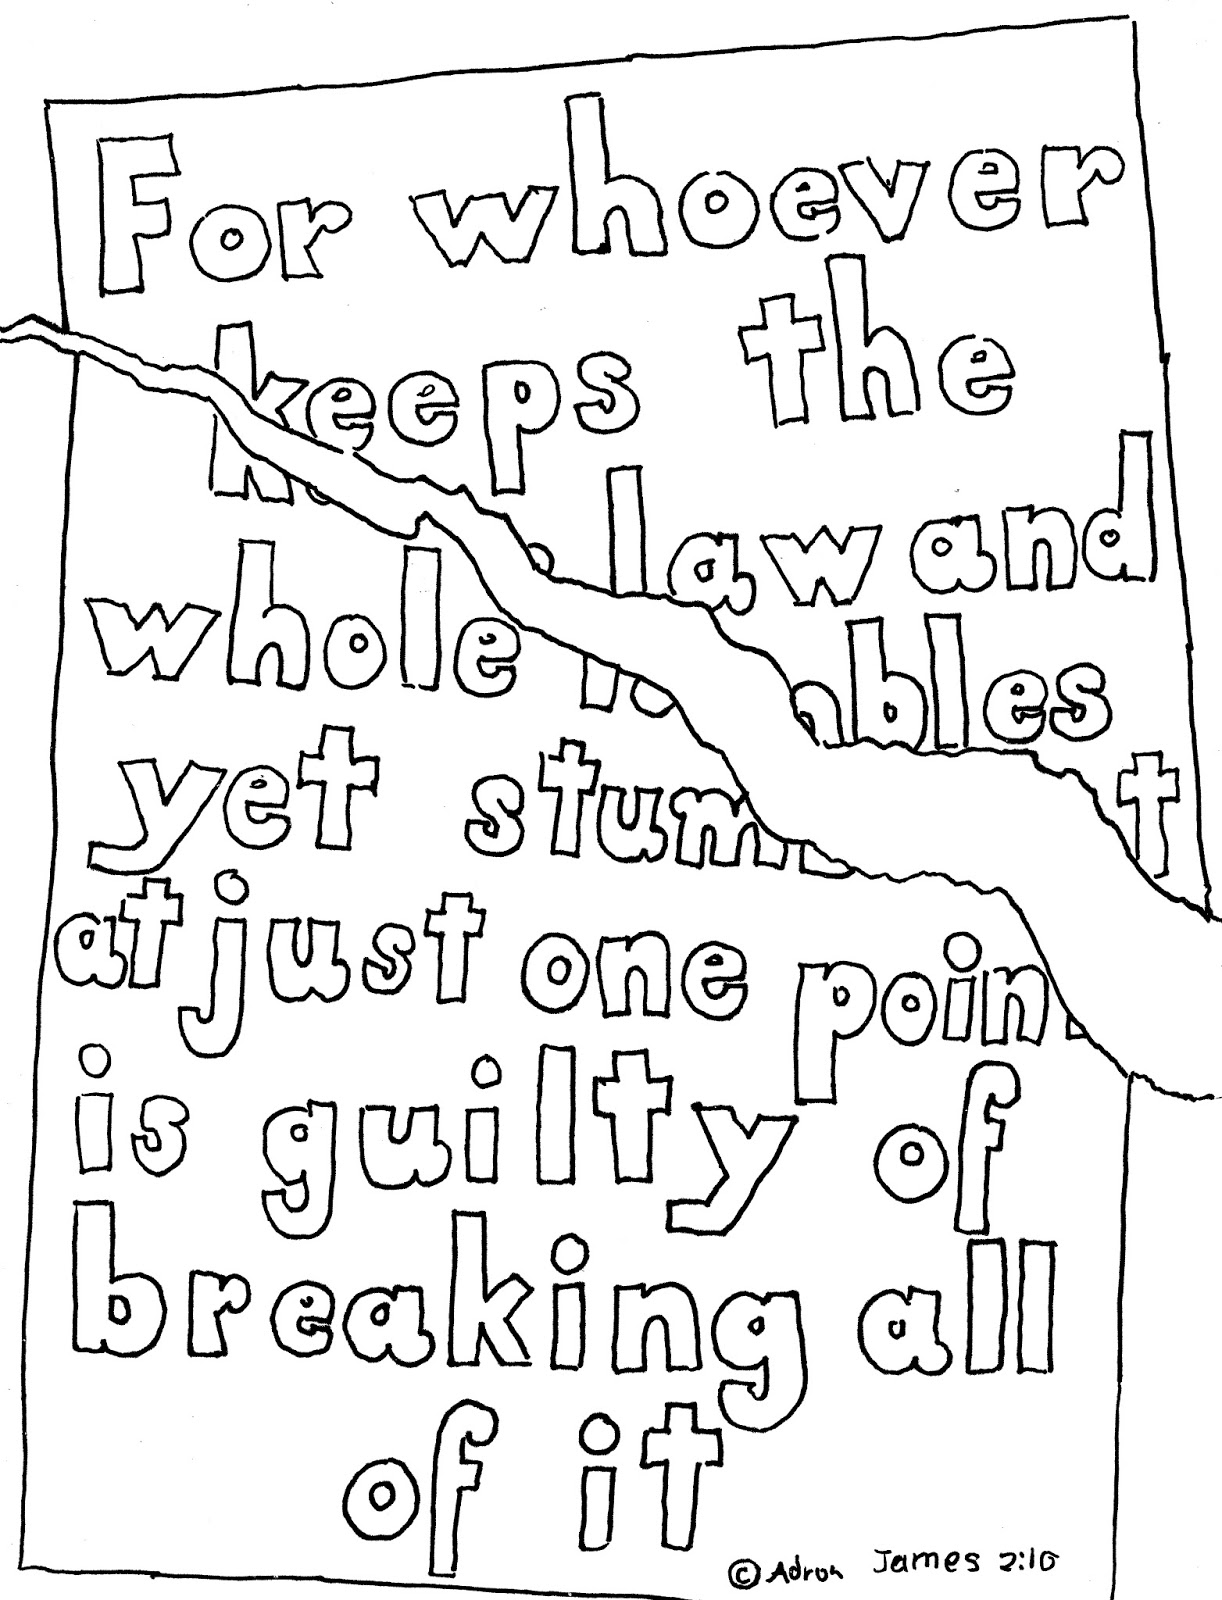 awana sparks coloring pages keeps-#13